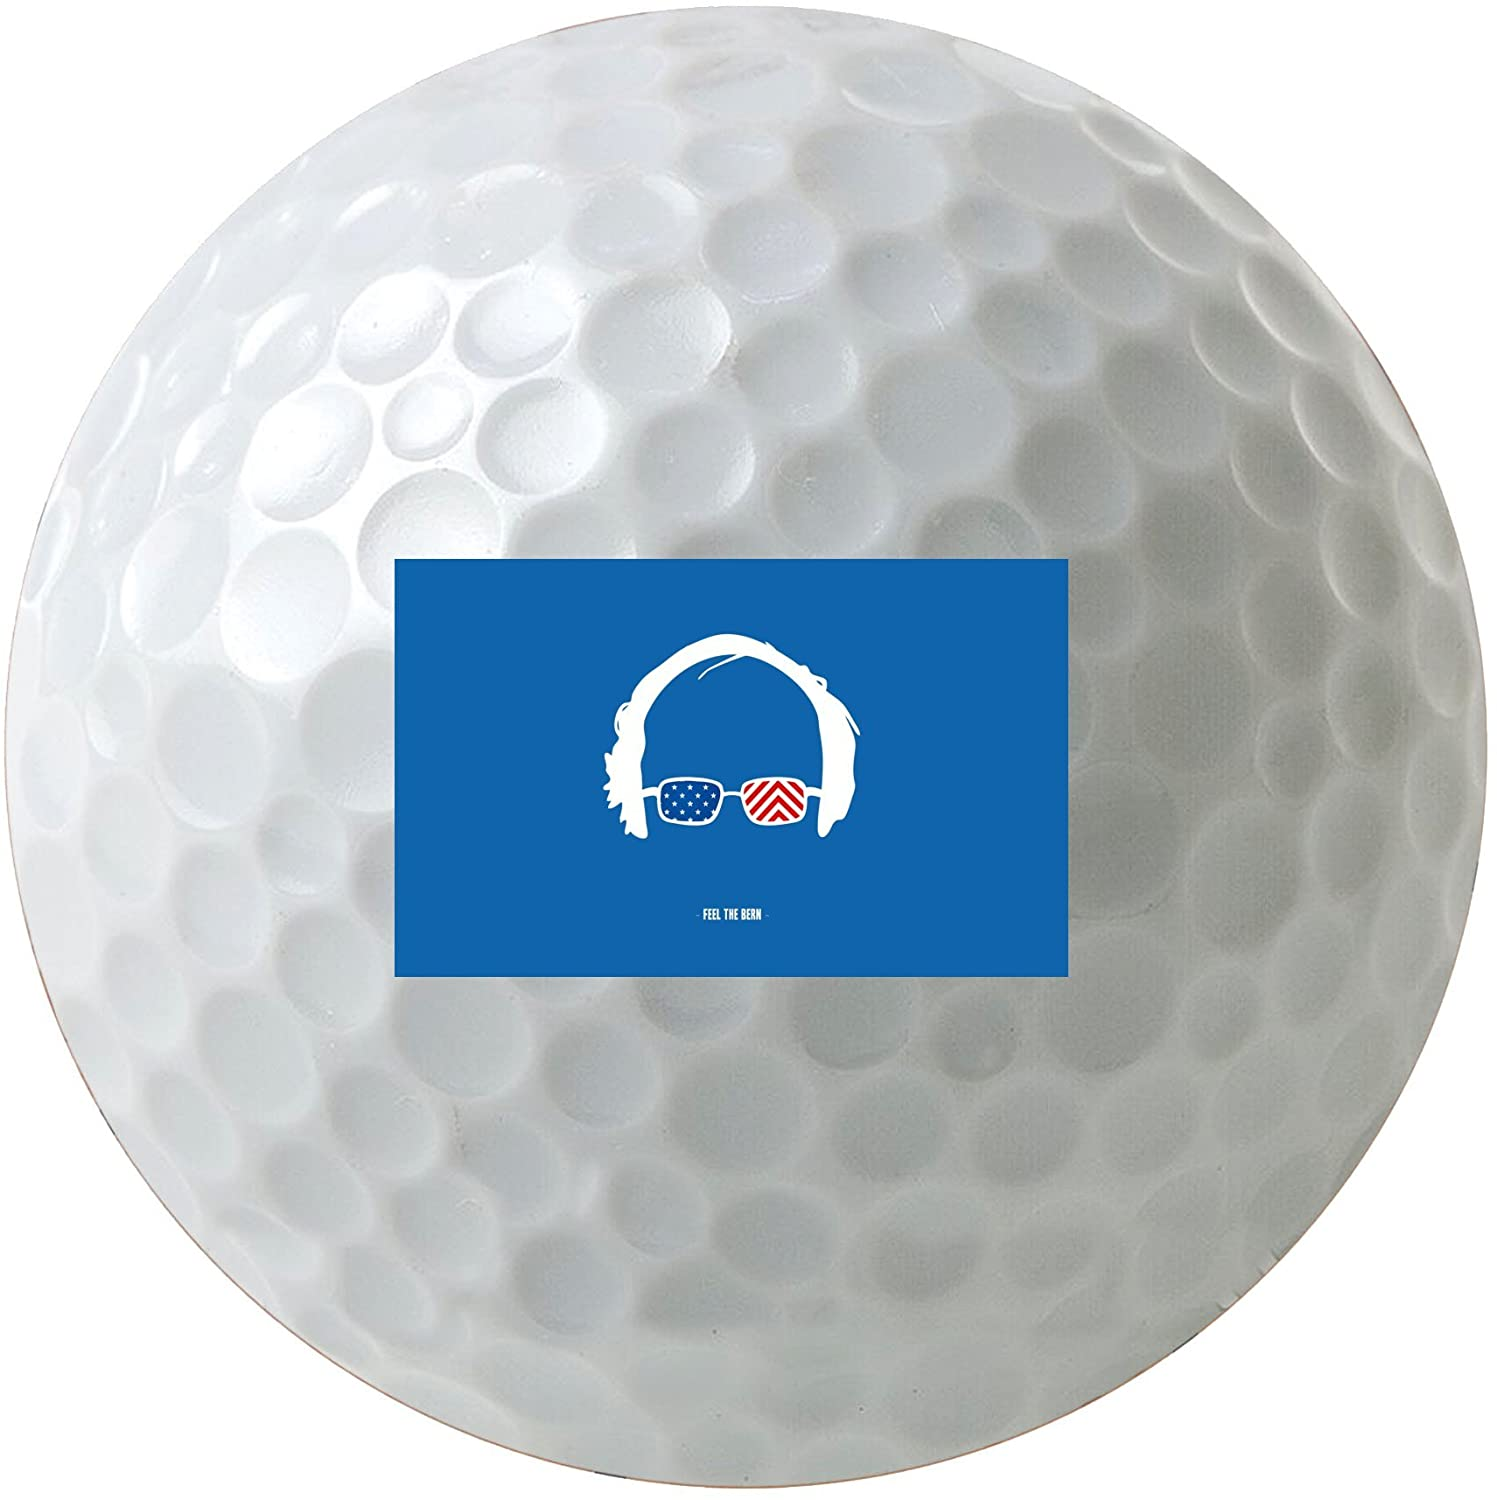 Debbie's Designs Feel The Bern Red White & Blue 3-Pack Printed Golf Balls